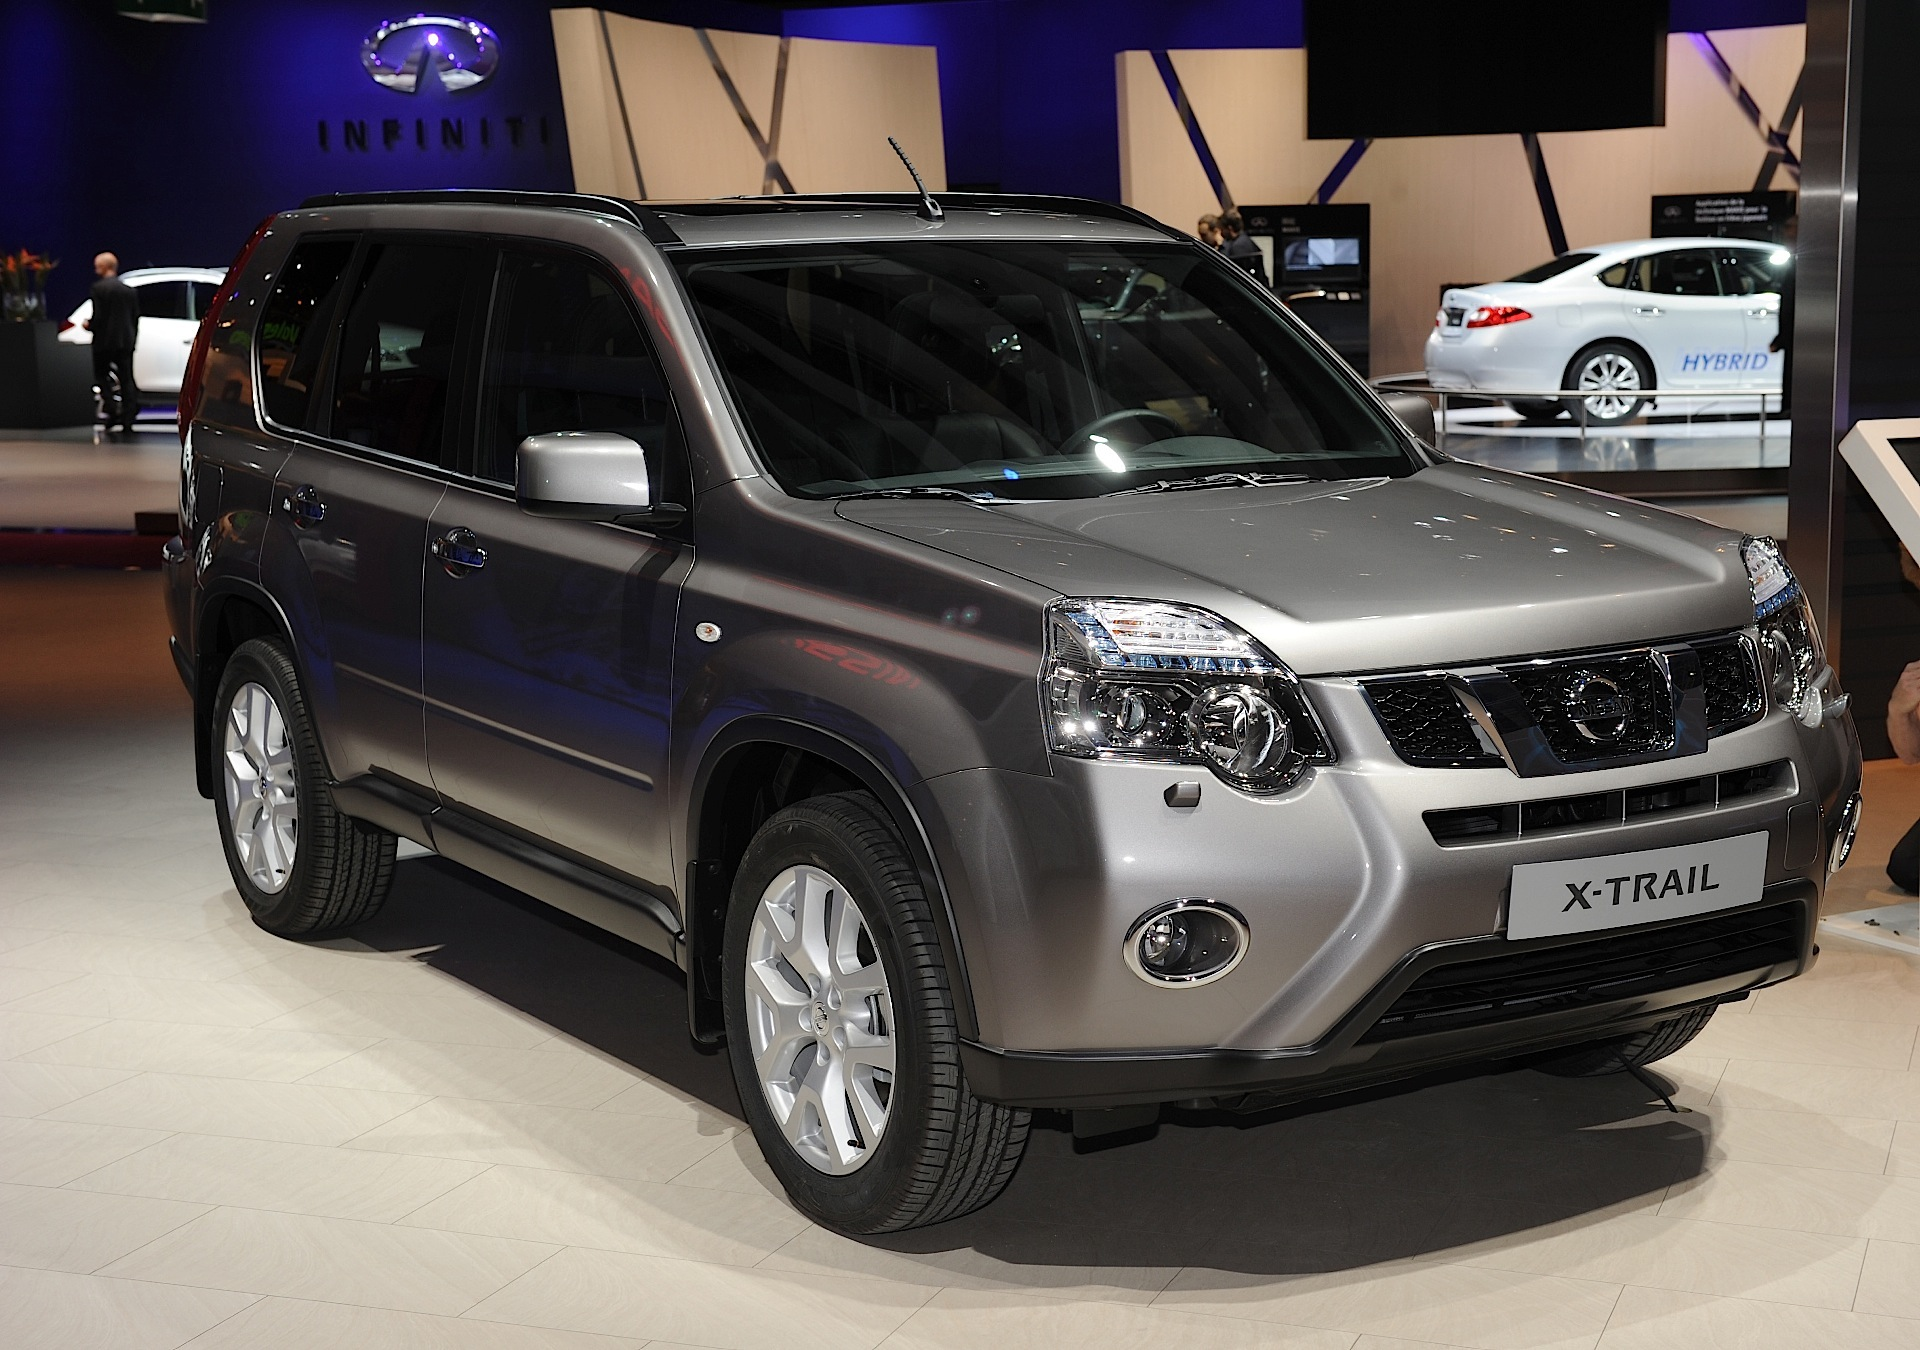 2013 nissan x trail 2 pictures information and specs auto. Black Bedroom Furniture Sets. Home Design Ideas